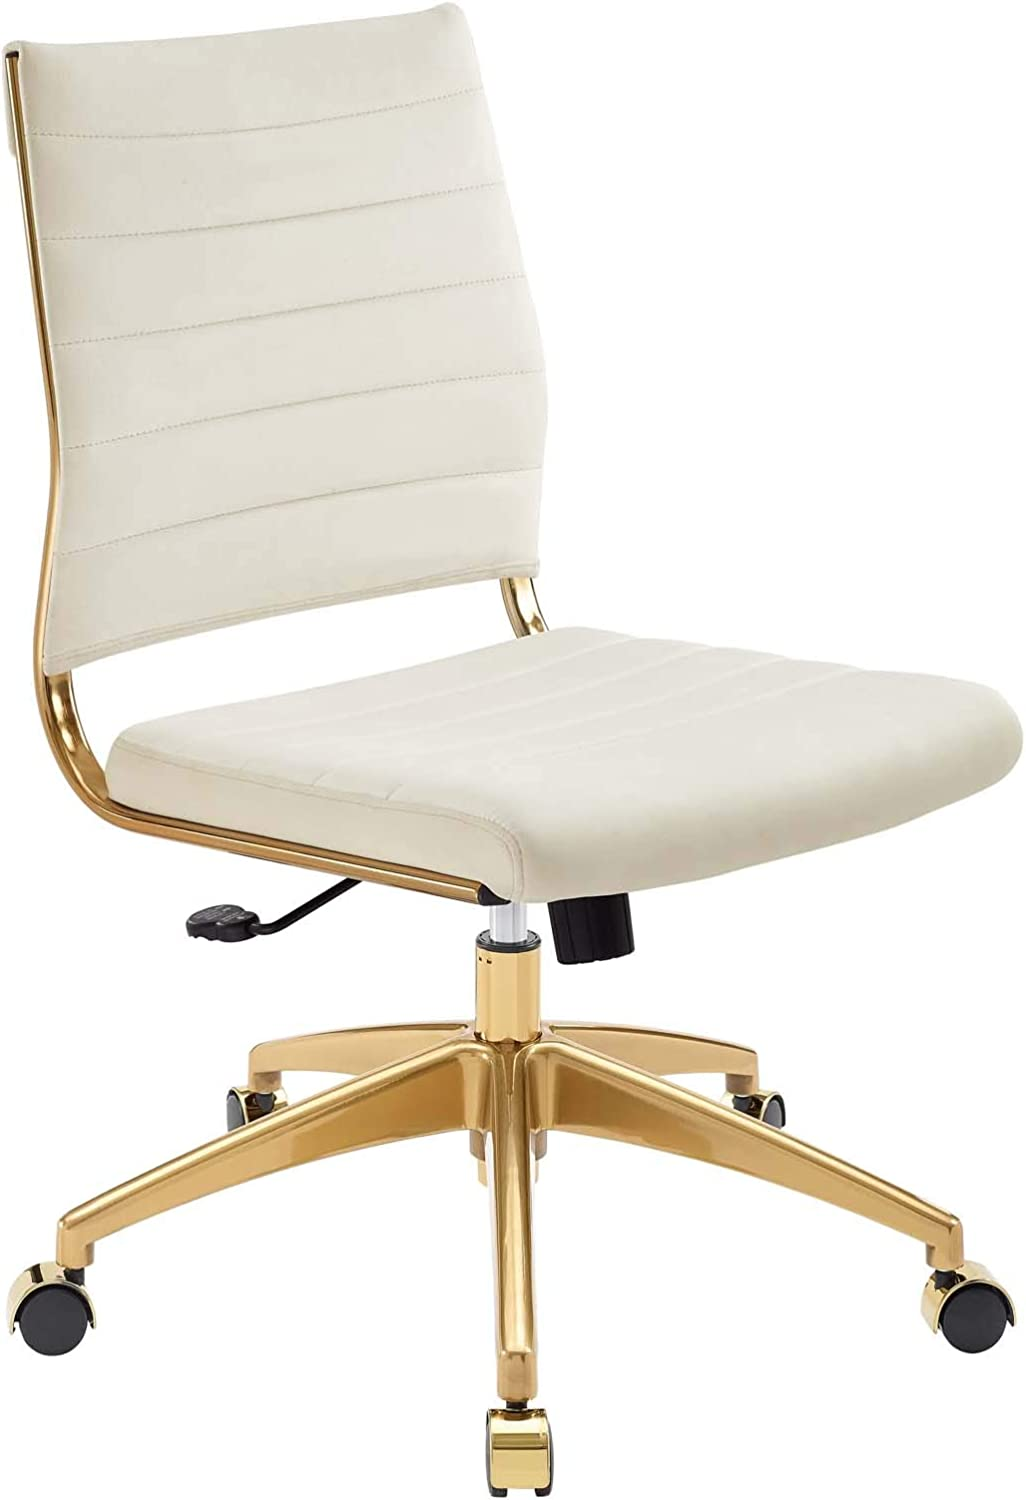 Amazon Com Modway Jive Ribbed Performance Velvet Mid Back Armless Computer Desk Swivel Office Chair In Ivory Furniture Decor